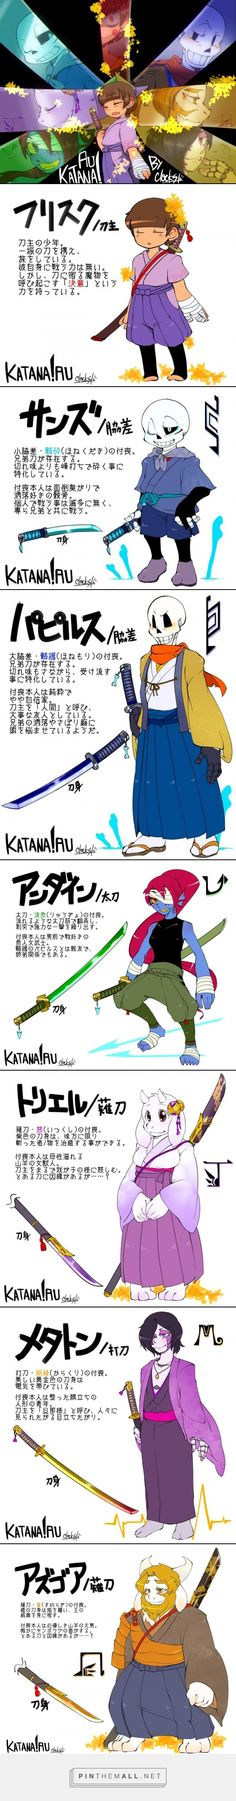 Chara: Nice! Everyone's got a weapon! Kitty: For me, in this AU mines is as long as Sans with a flower-embroidered handle Aurora: I'd love to be in this AU since I have sword training